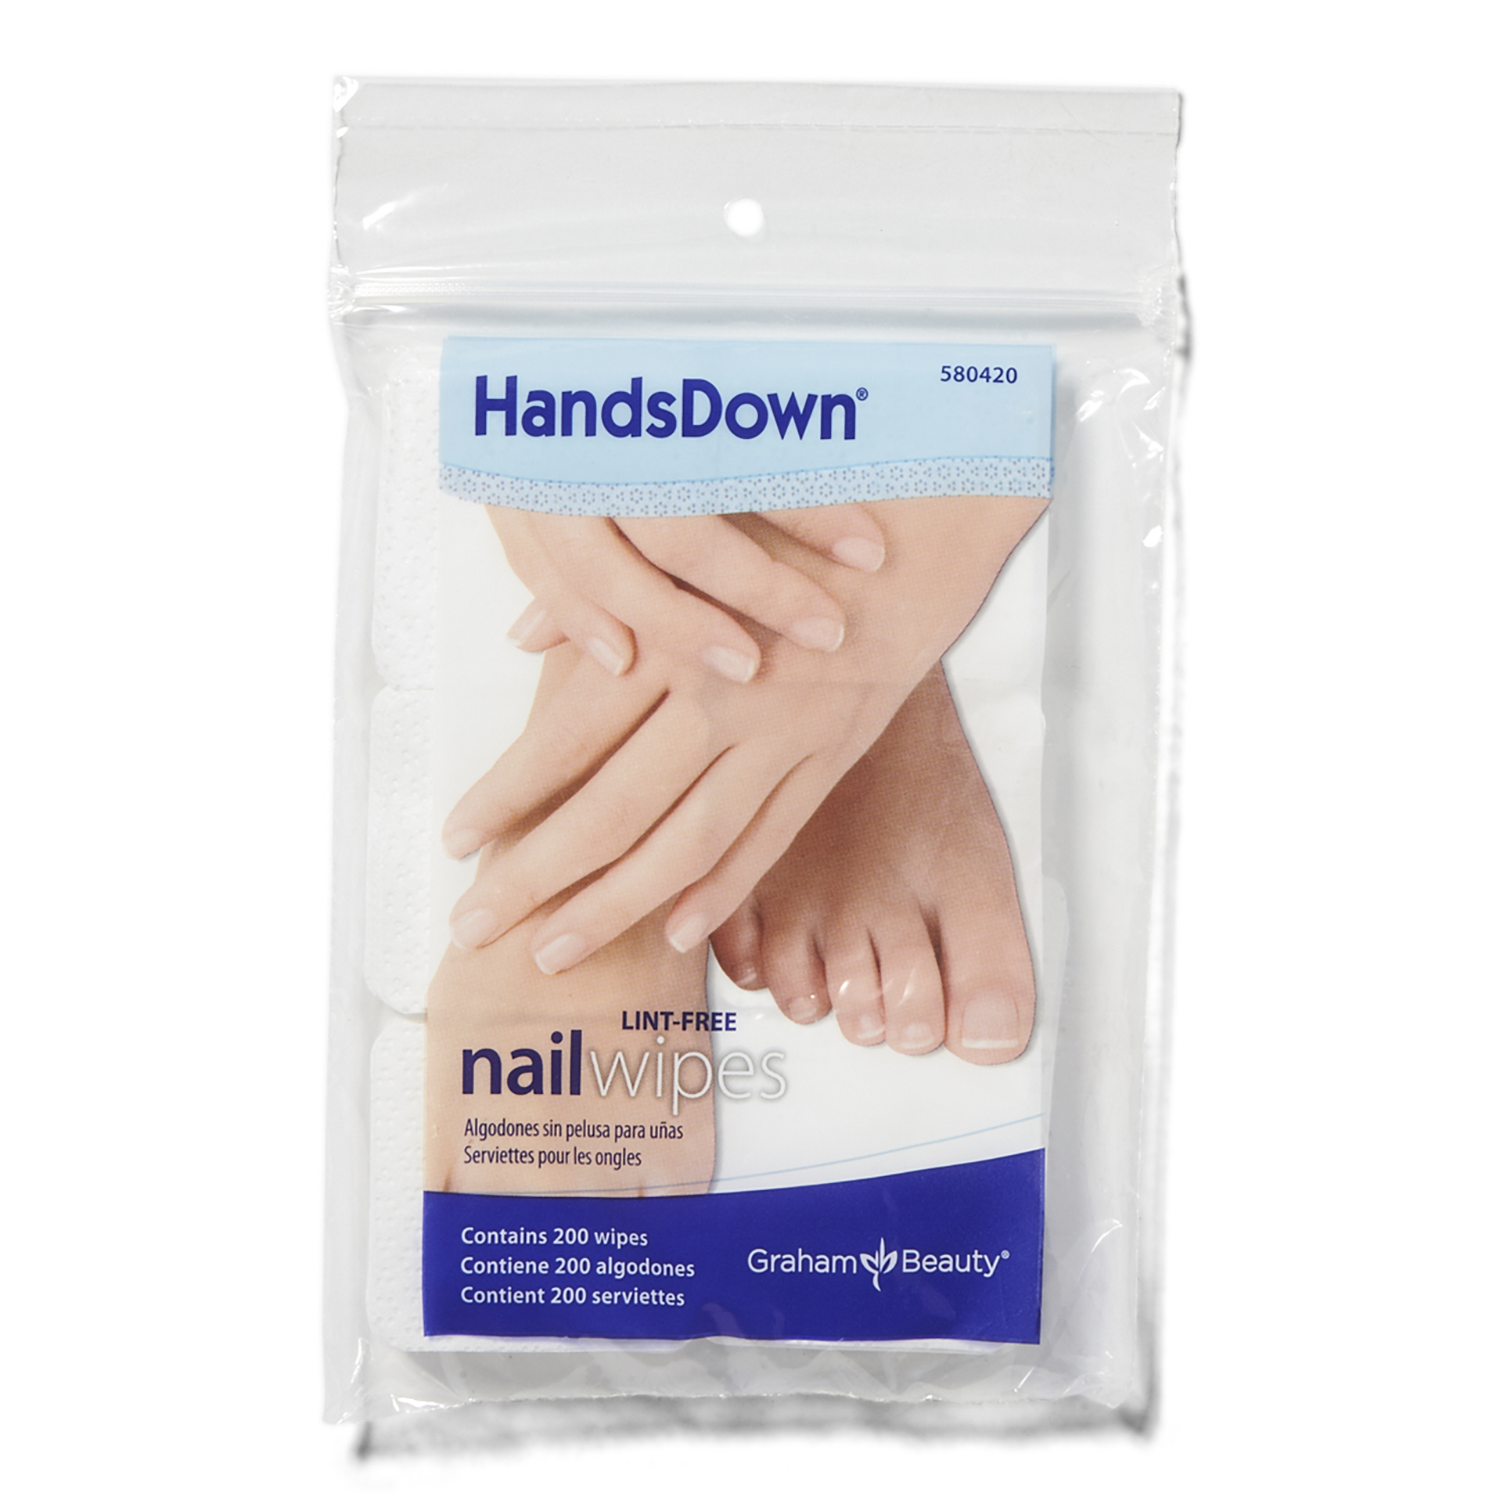 Sally Beauty coupon: Graham Professional Beauty Hands Down Nail Wipes | Sally Beauty